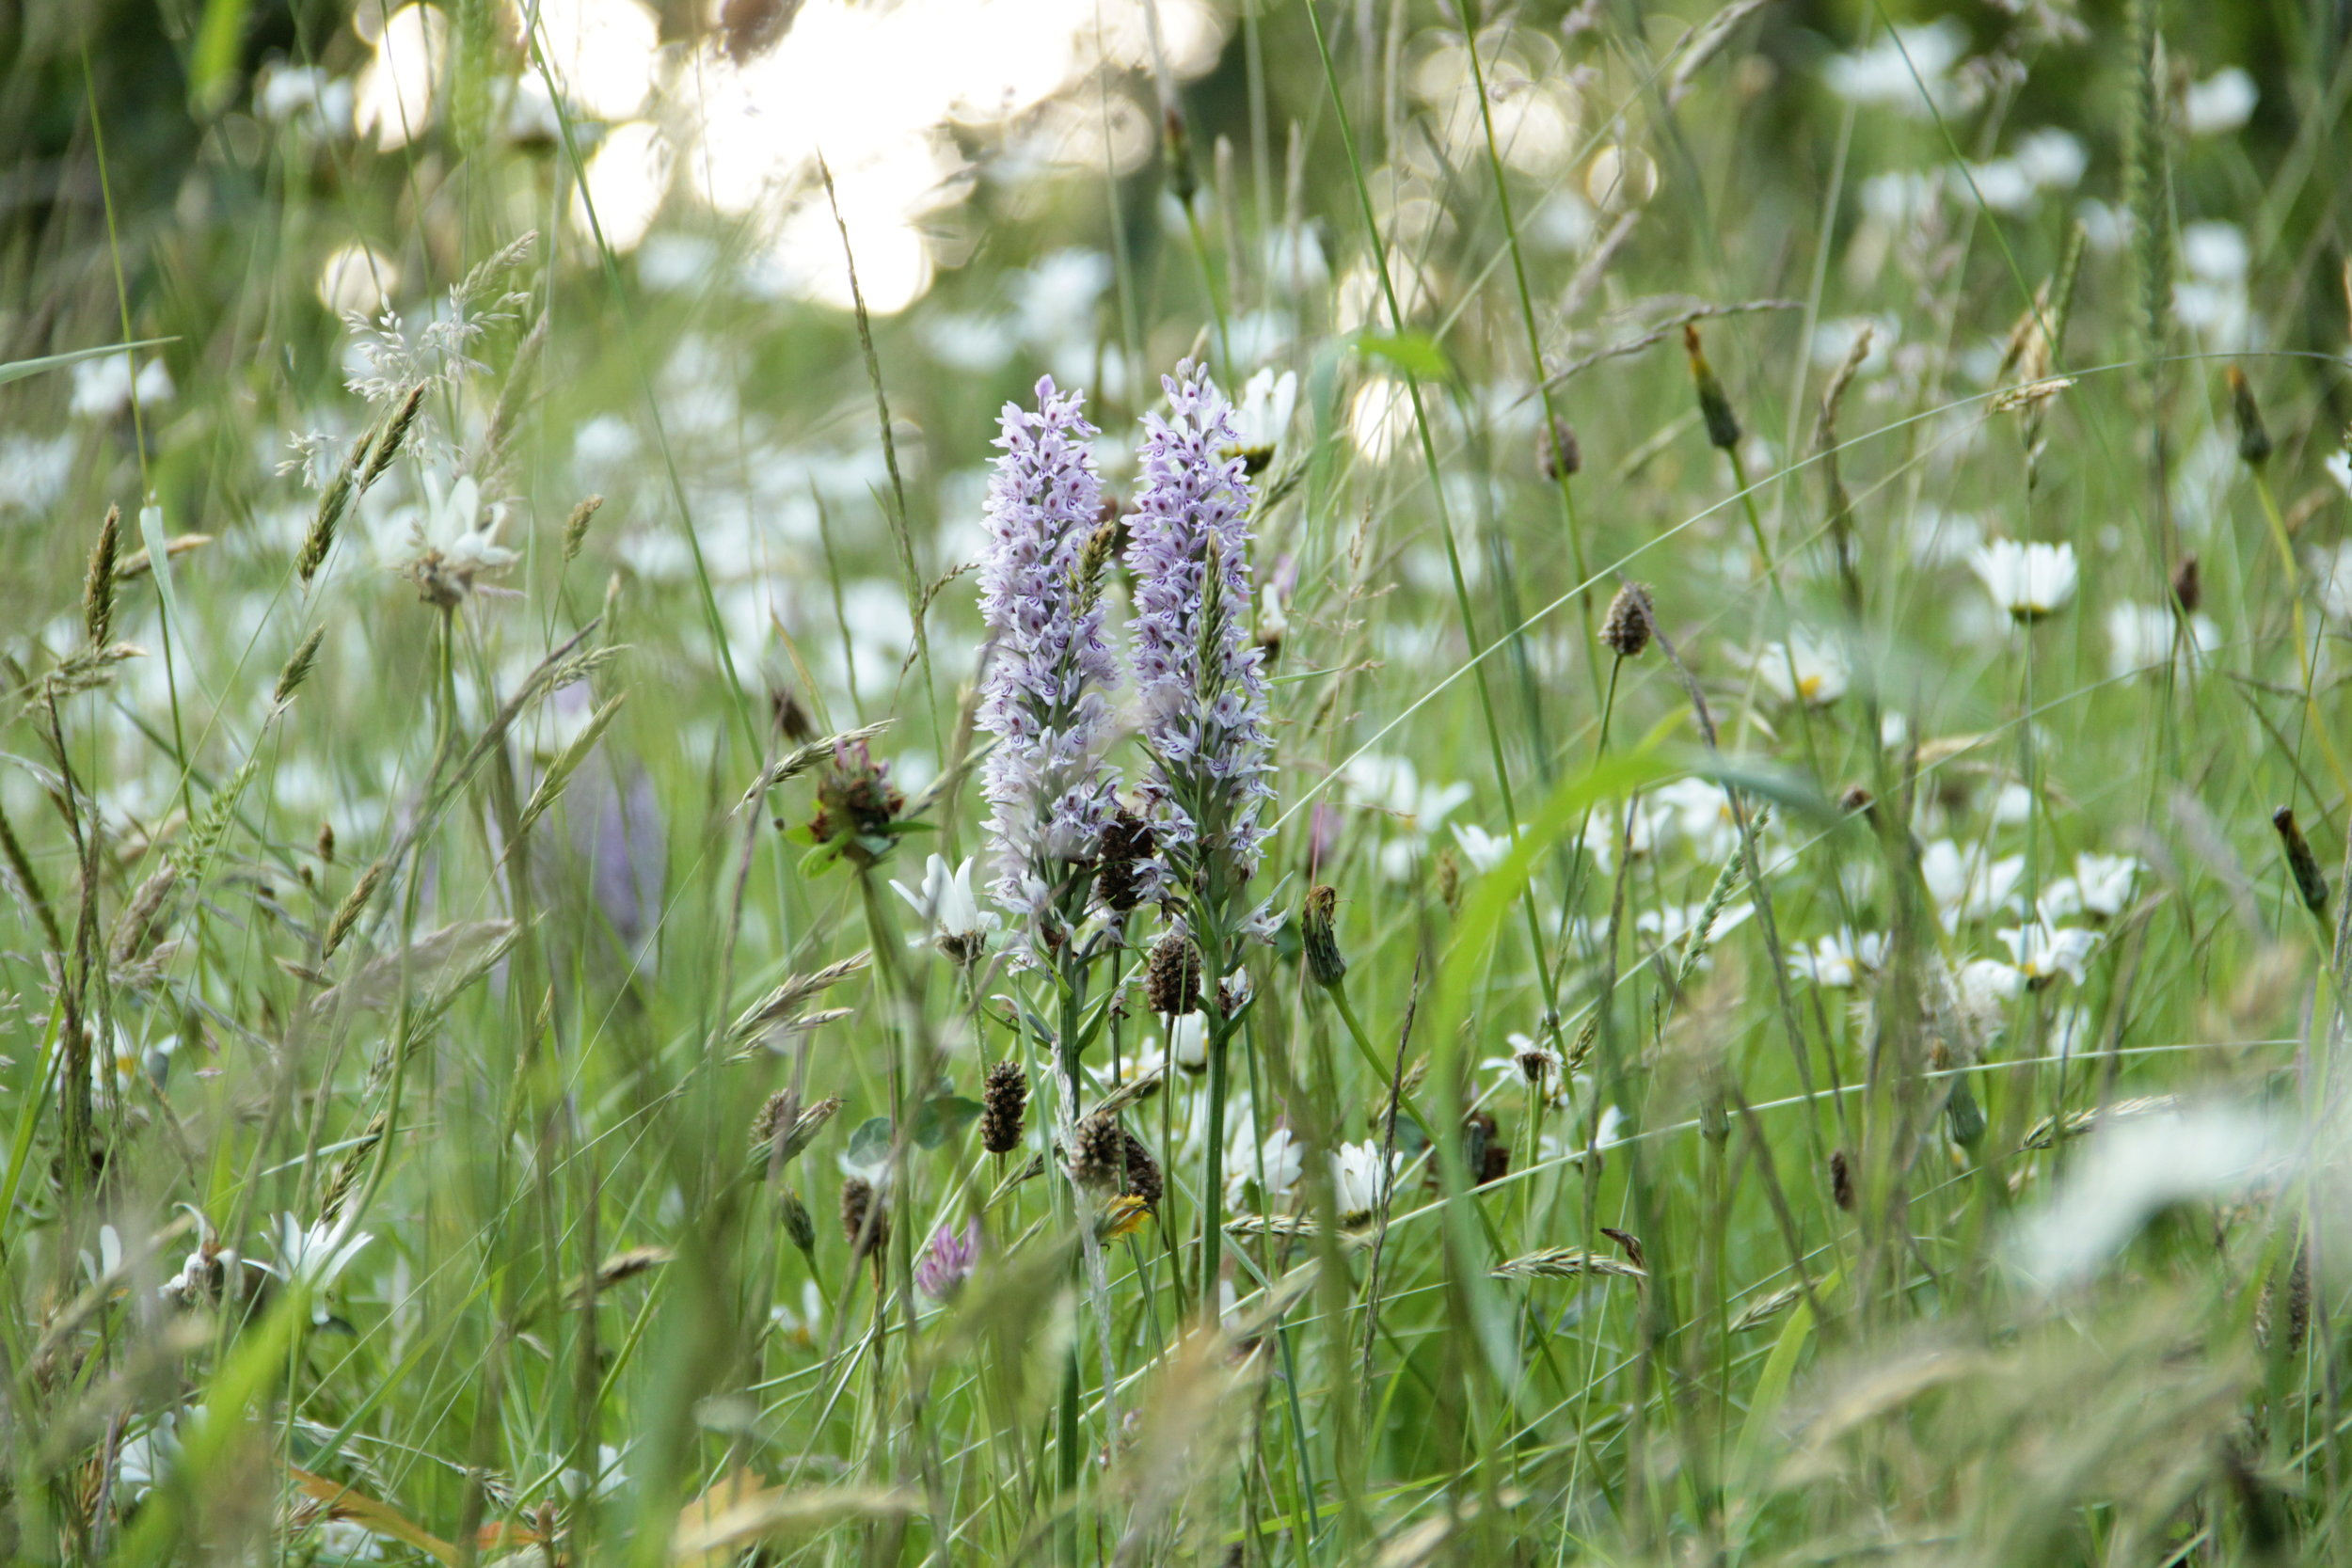 Native Orchids, Dactylorhiza fuchsii, at Gravetye Manor